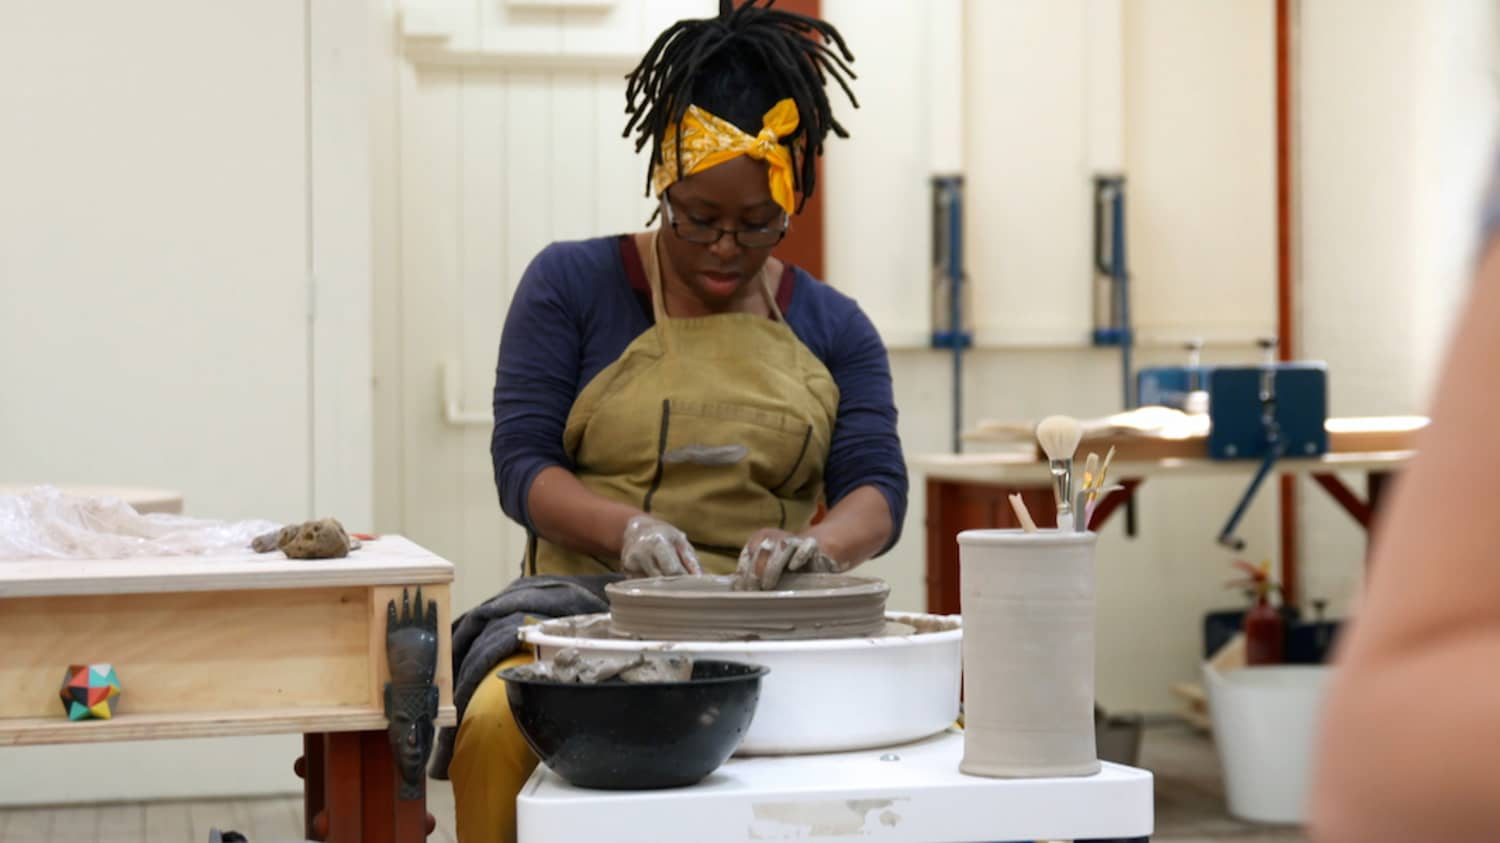 'The Great Pottery Throw Down' Is Like 'Great British Bake Off' But With Ceramics